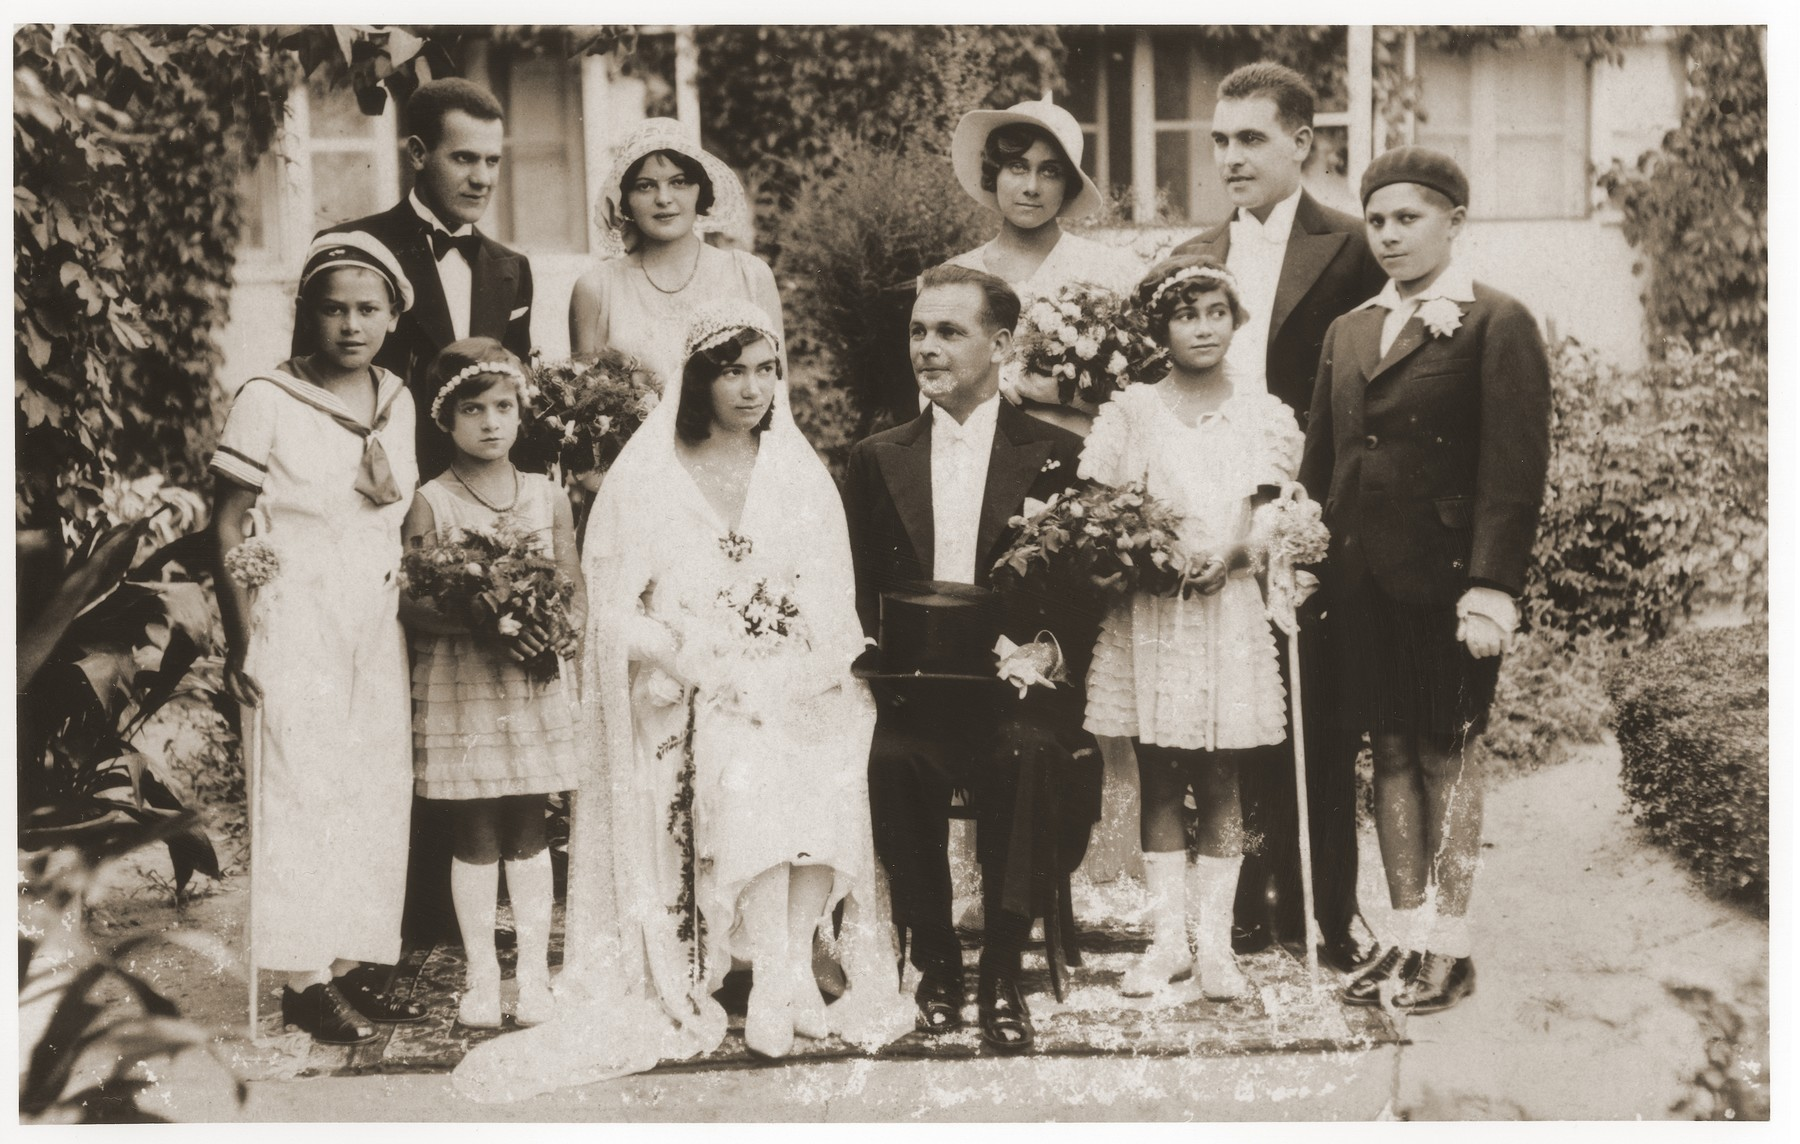 Wedding portrait of Magda Shiller and Miklos Blauhorn taken in the Shiller's back yard.   Pictured in the front row from left to right are, Ivan Singer, Ana Singer, Magda Shiller, Miklos Blauhorn, Olga Shiller and Yelinek Josko.  Behind Ivan is Gabor Schwartz.  All those pictured except Ivan perished during World War II.